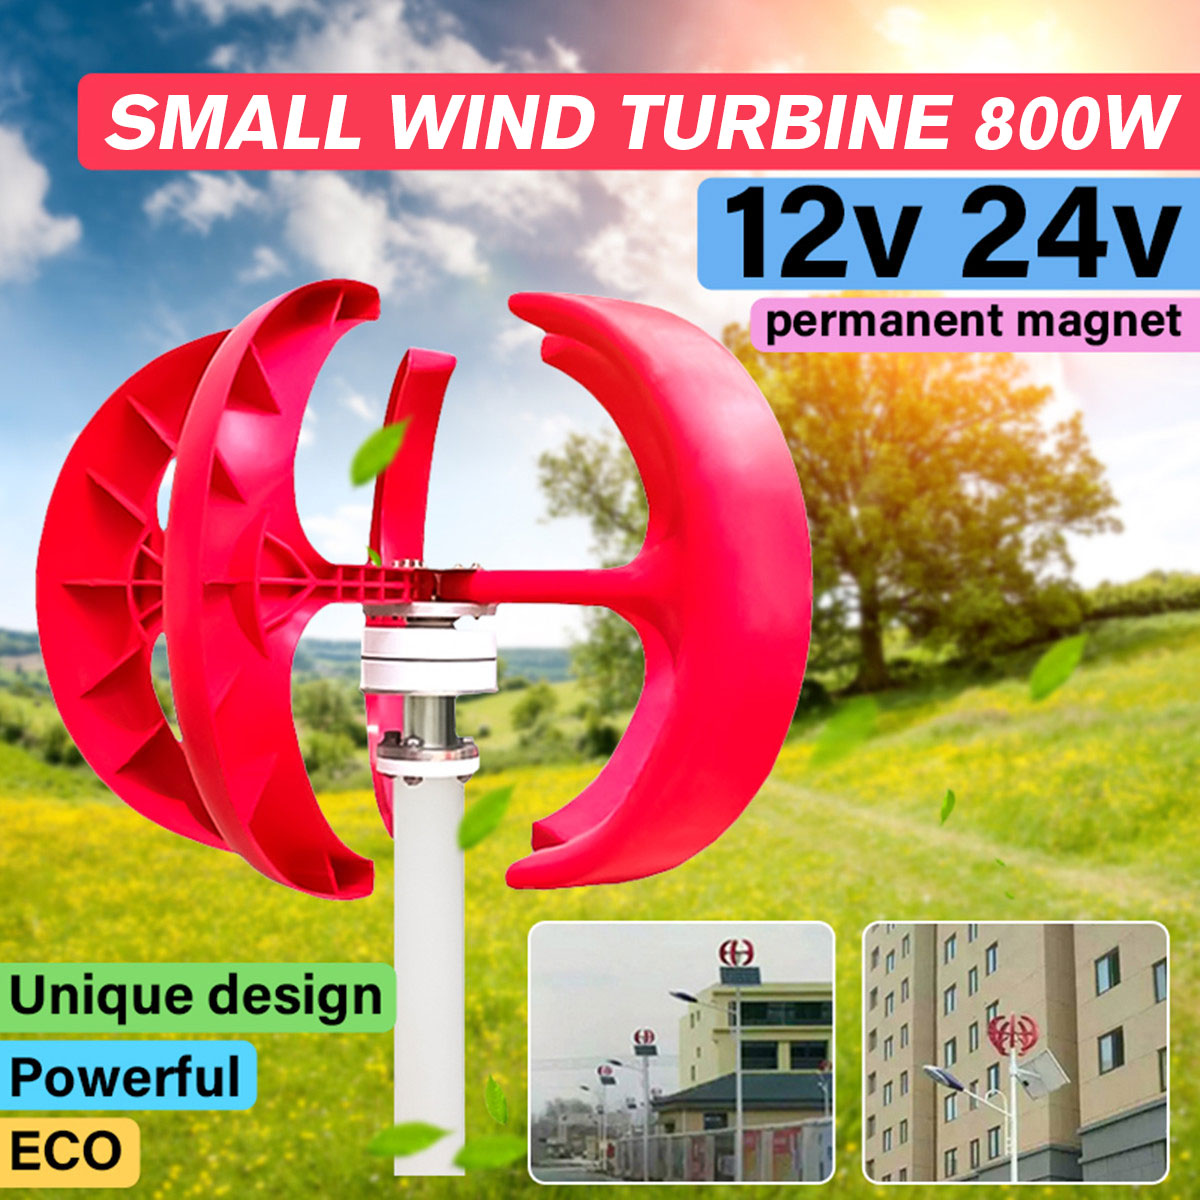 New Max 800W 12V/24V Wind Turbinen Generator Lantern 5 Blades Motor Kit Vertical Axis 3 Phase AC Permanent Magnet Generator Hot Турбина